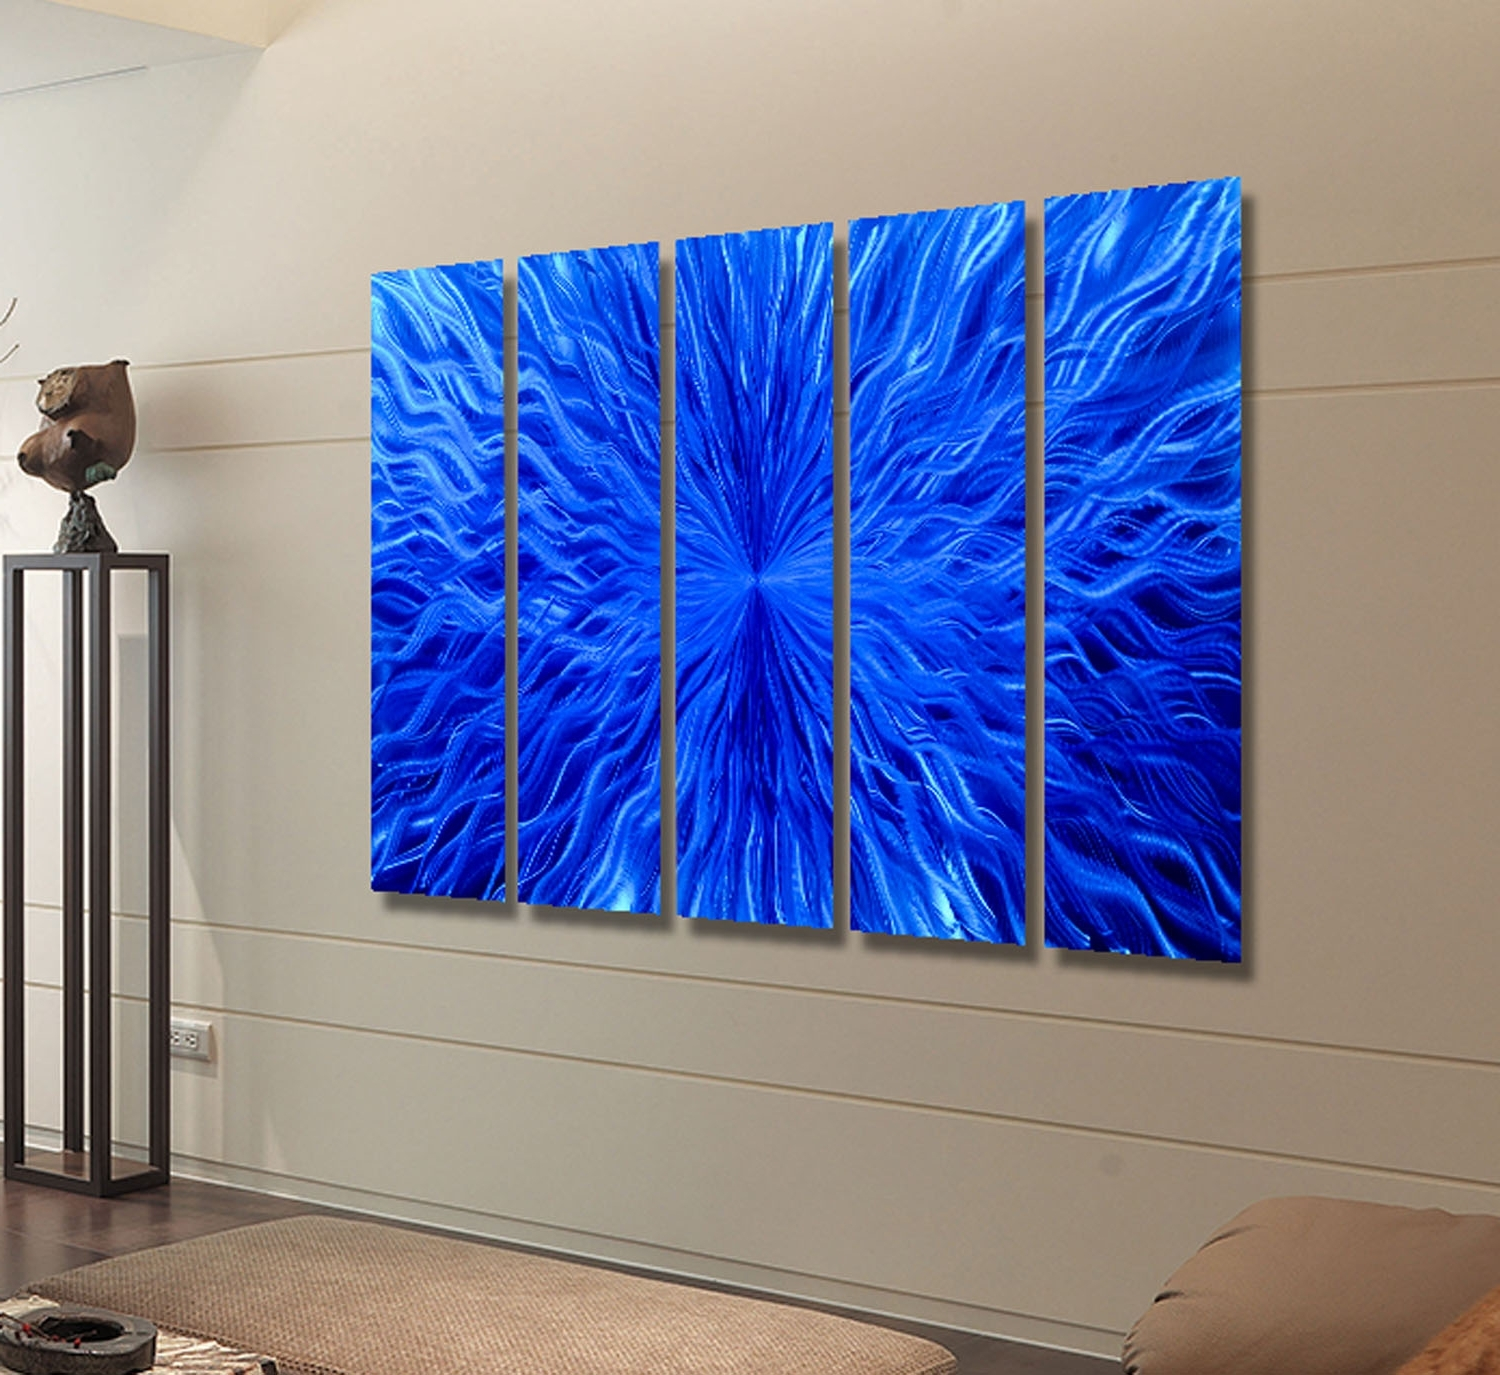 Fashionable Large Abstract Metal Wall Art Inside Blue Vortex Epic – Extra Large Blue Abstract Metal Wall Artjon (View 6 of 15)